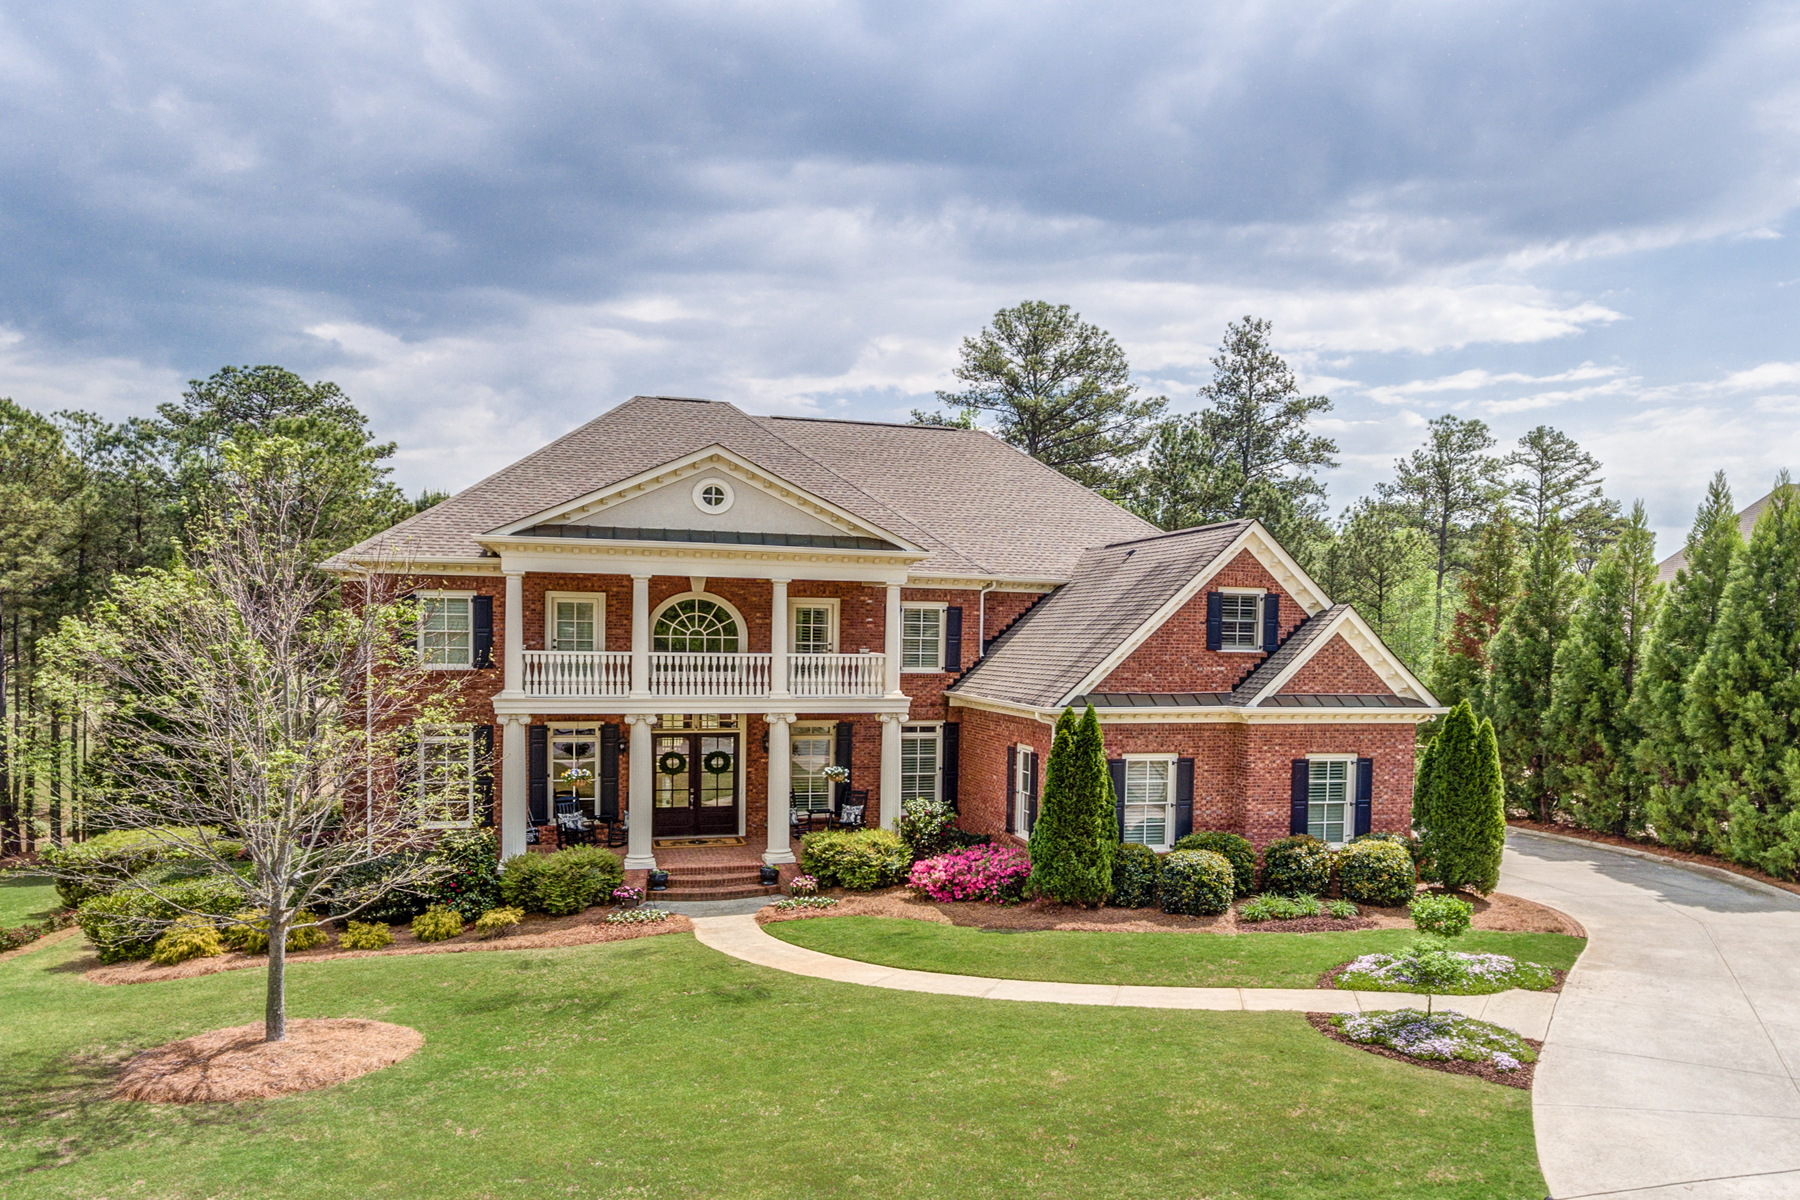 Casa Unifamiliar por un Venta en Luxury Home In Gated Golf Community 4374 Oglethorpe Loop NW Acworth, Georgia, 30101 Estados Unidos